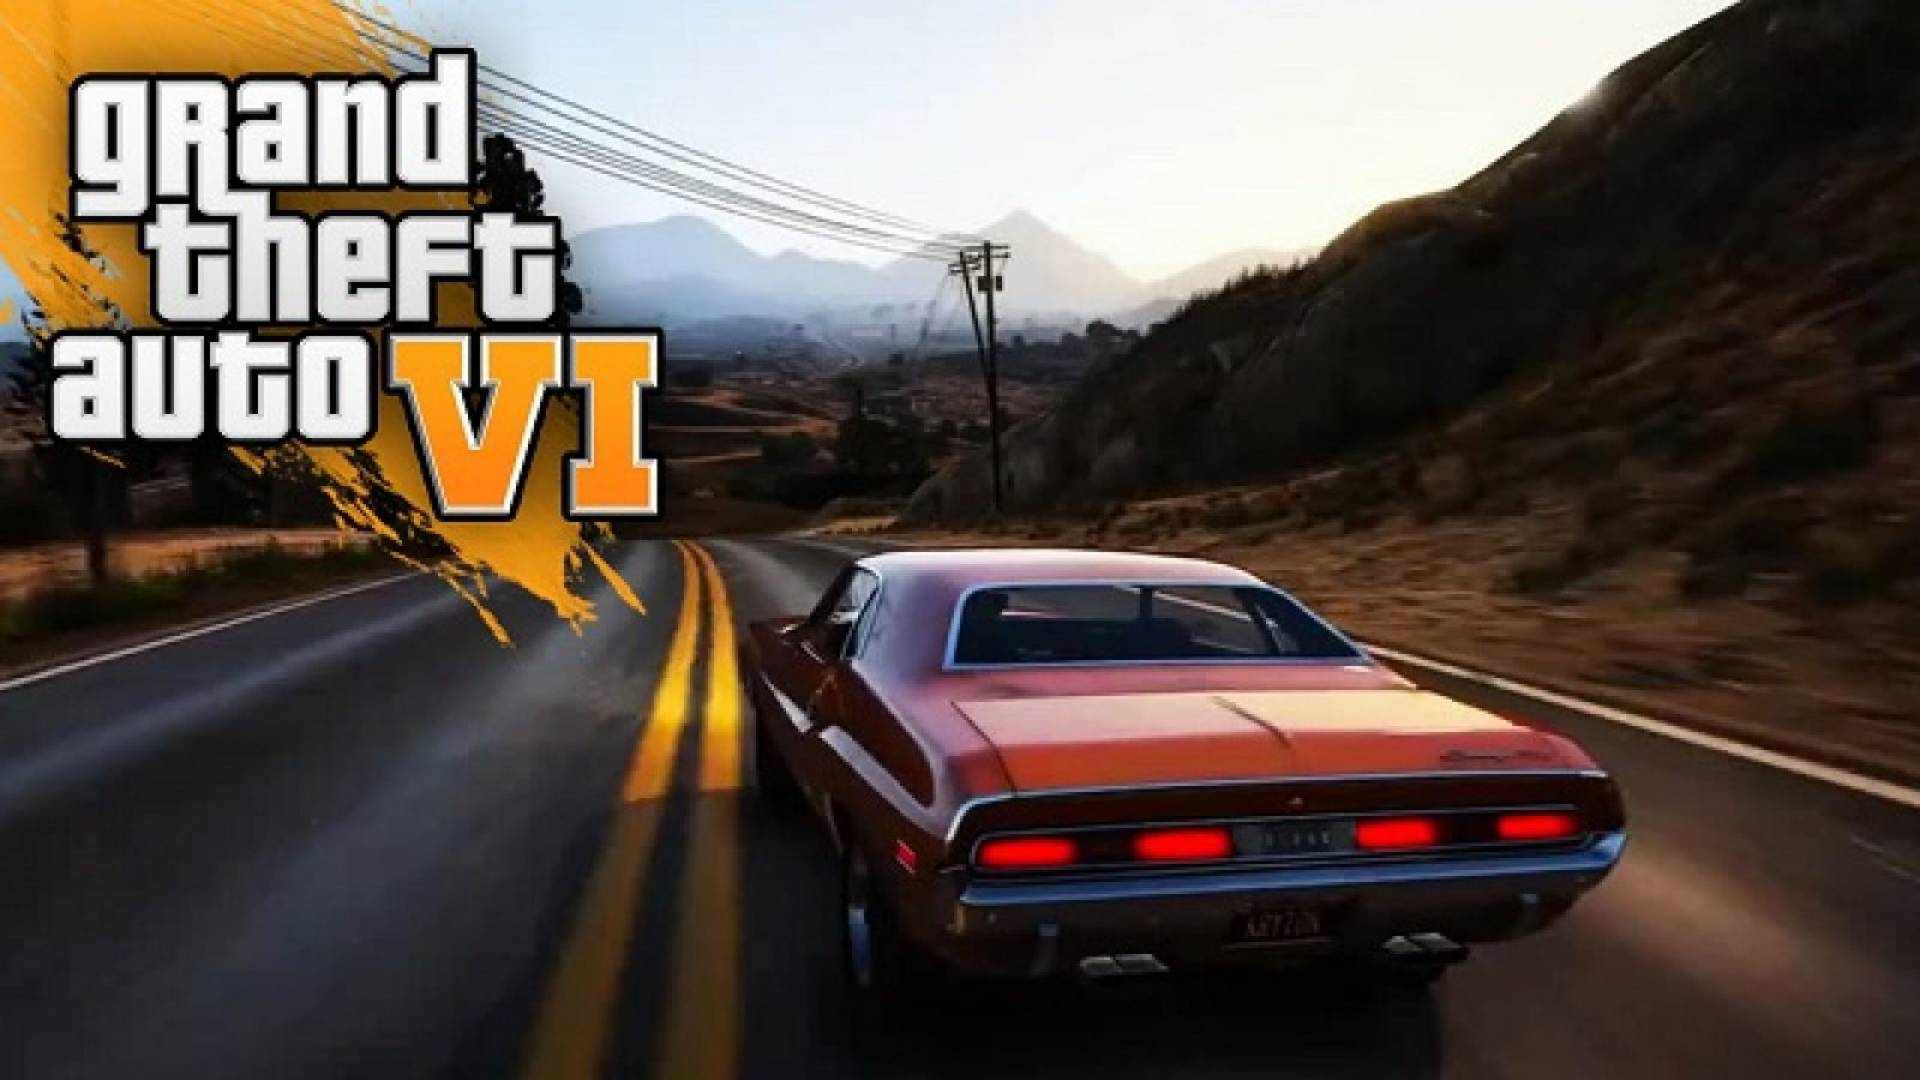 Grand Theft Auto 6 narcos